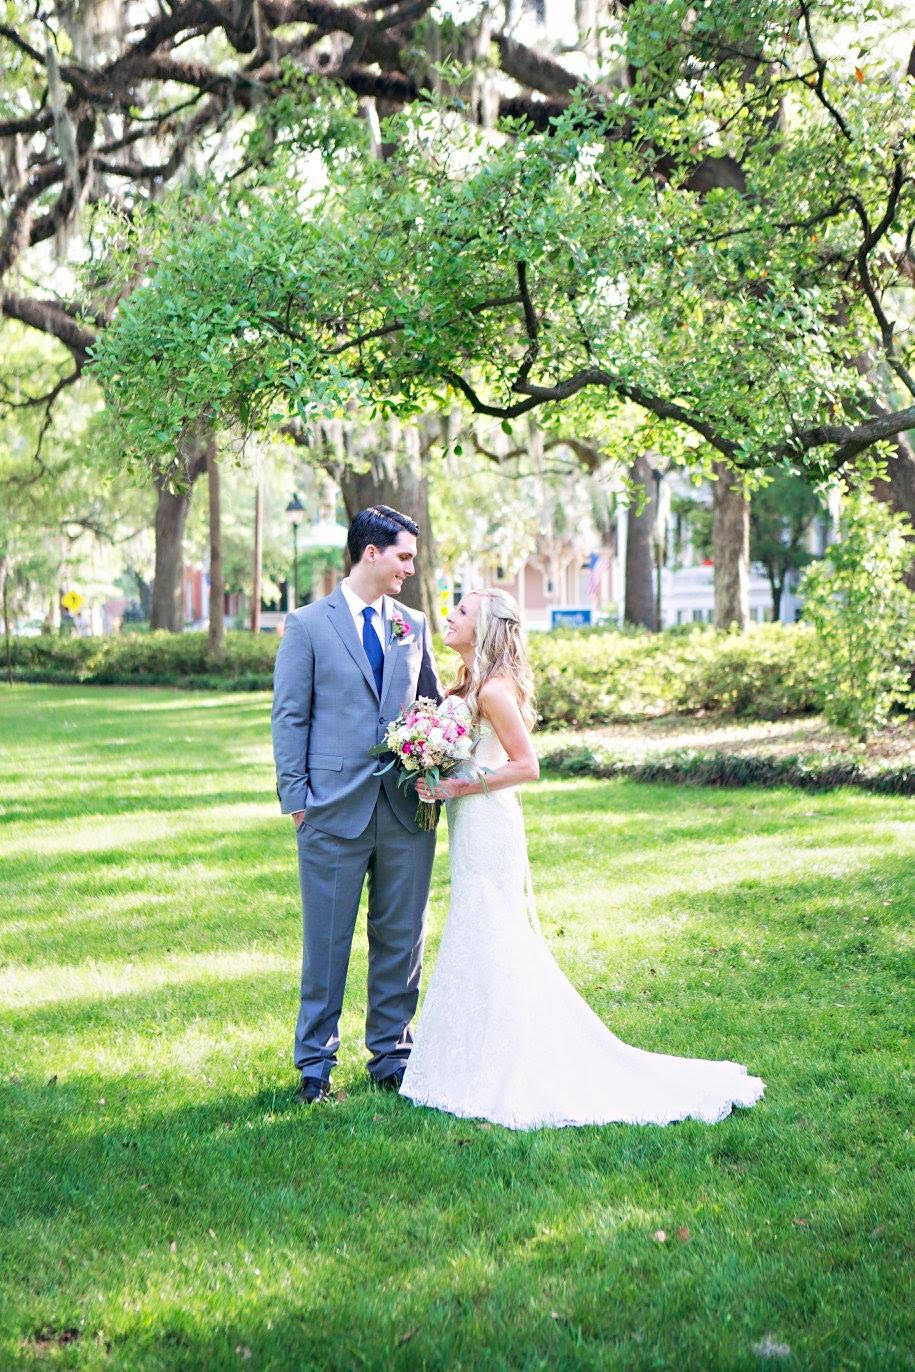 ivory-and-beau-bridal-boutique-savannah-wedding-dress-savannah-wedding-gown-savannah-bridal-boutique-savannah-bridal-shop-savannah-wedding-planner-maggie-sottero-wedding-gown-maggie-sottero-wedding-dress-lottie-maggie-sottero-5.jpg